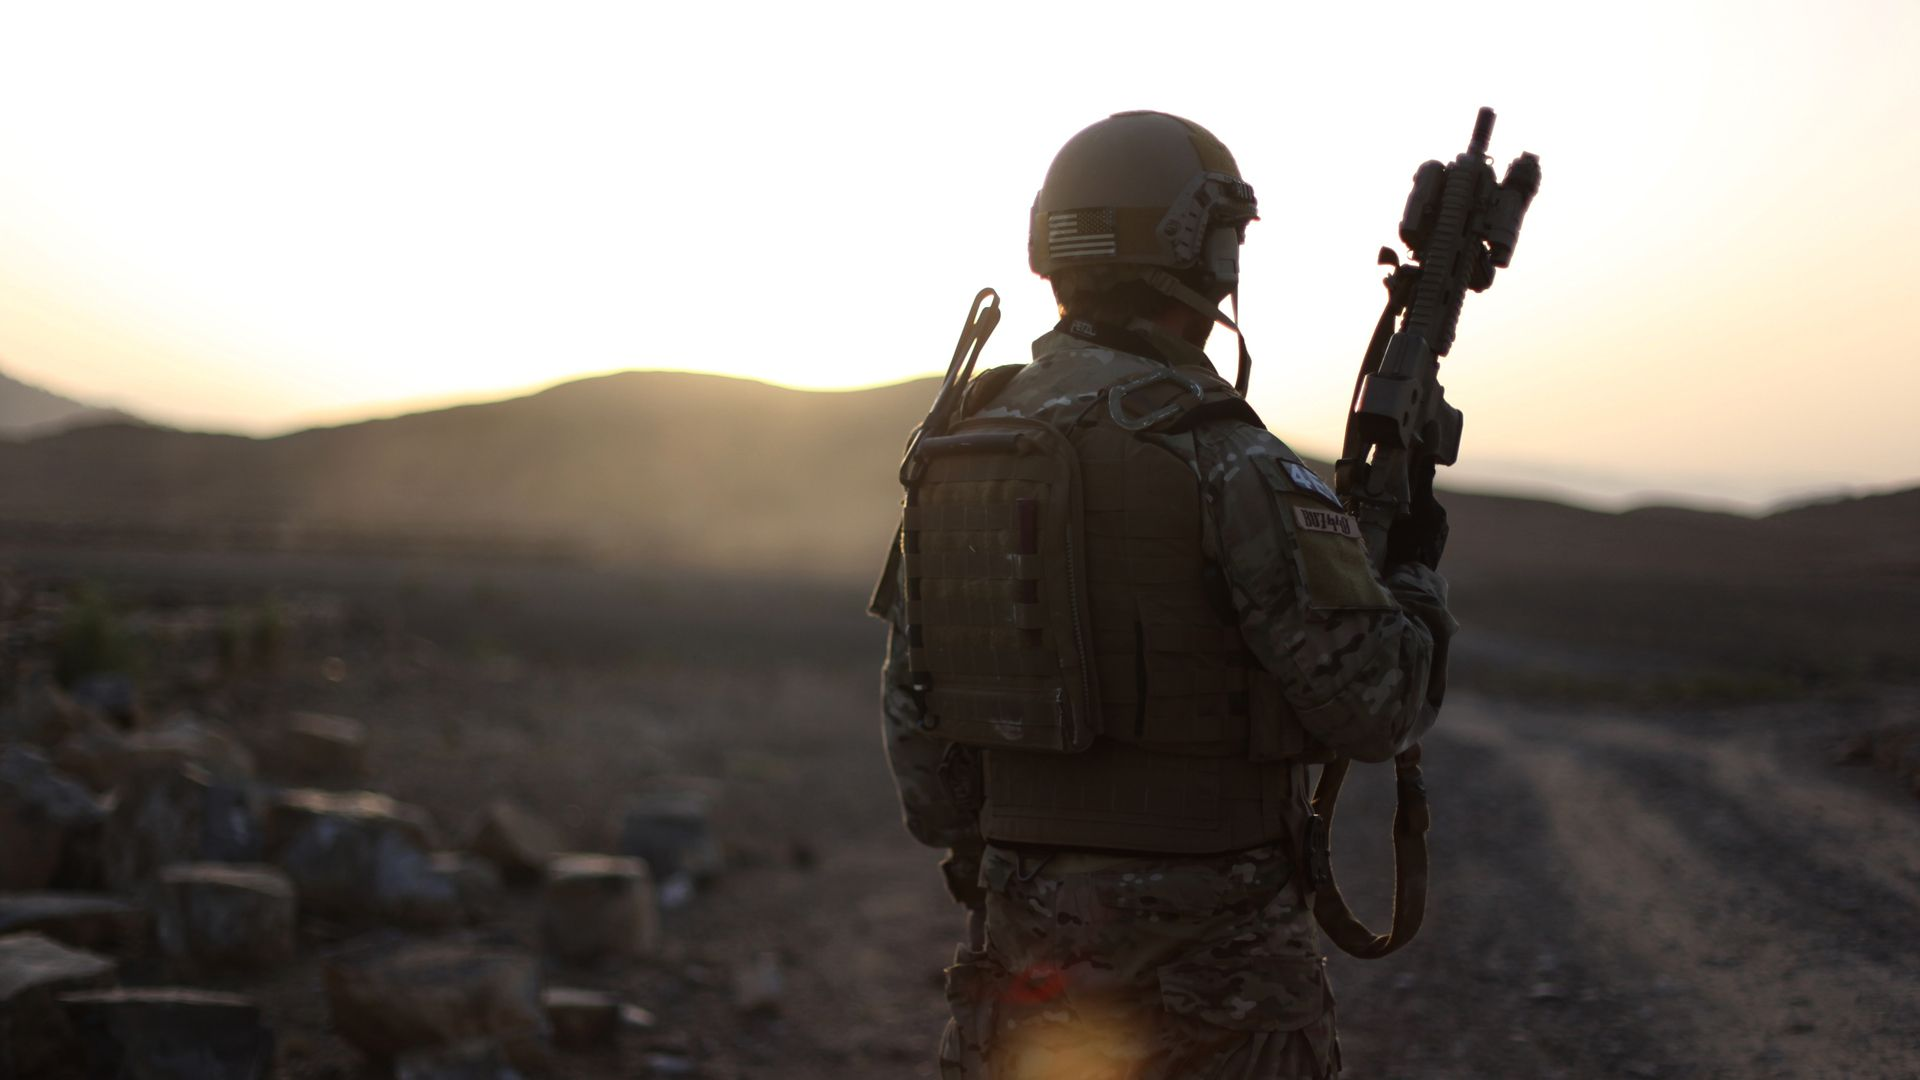 Silhouettes Army Hd Wallpaper 5 Army Army Military Marines